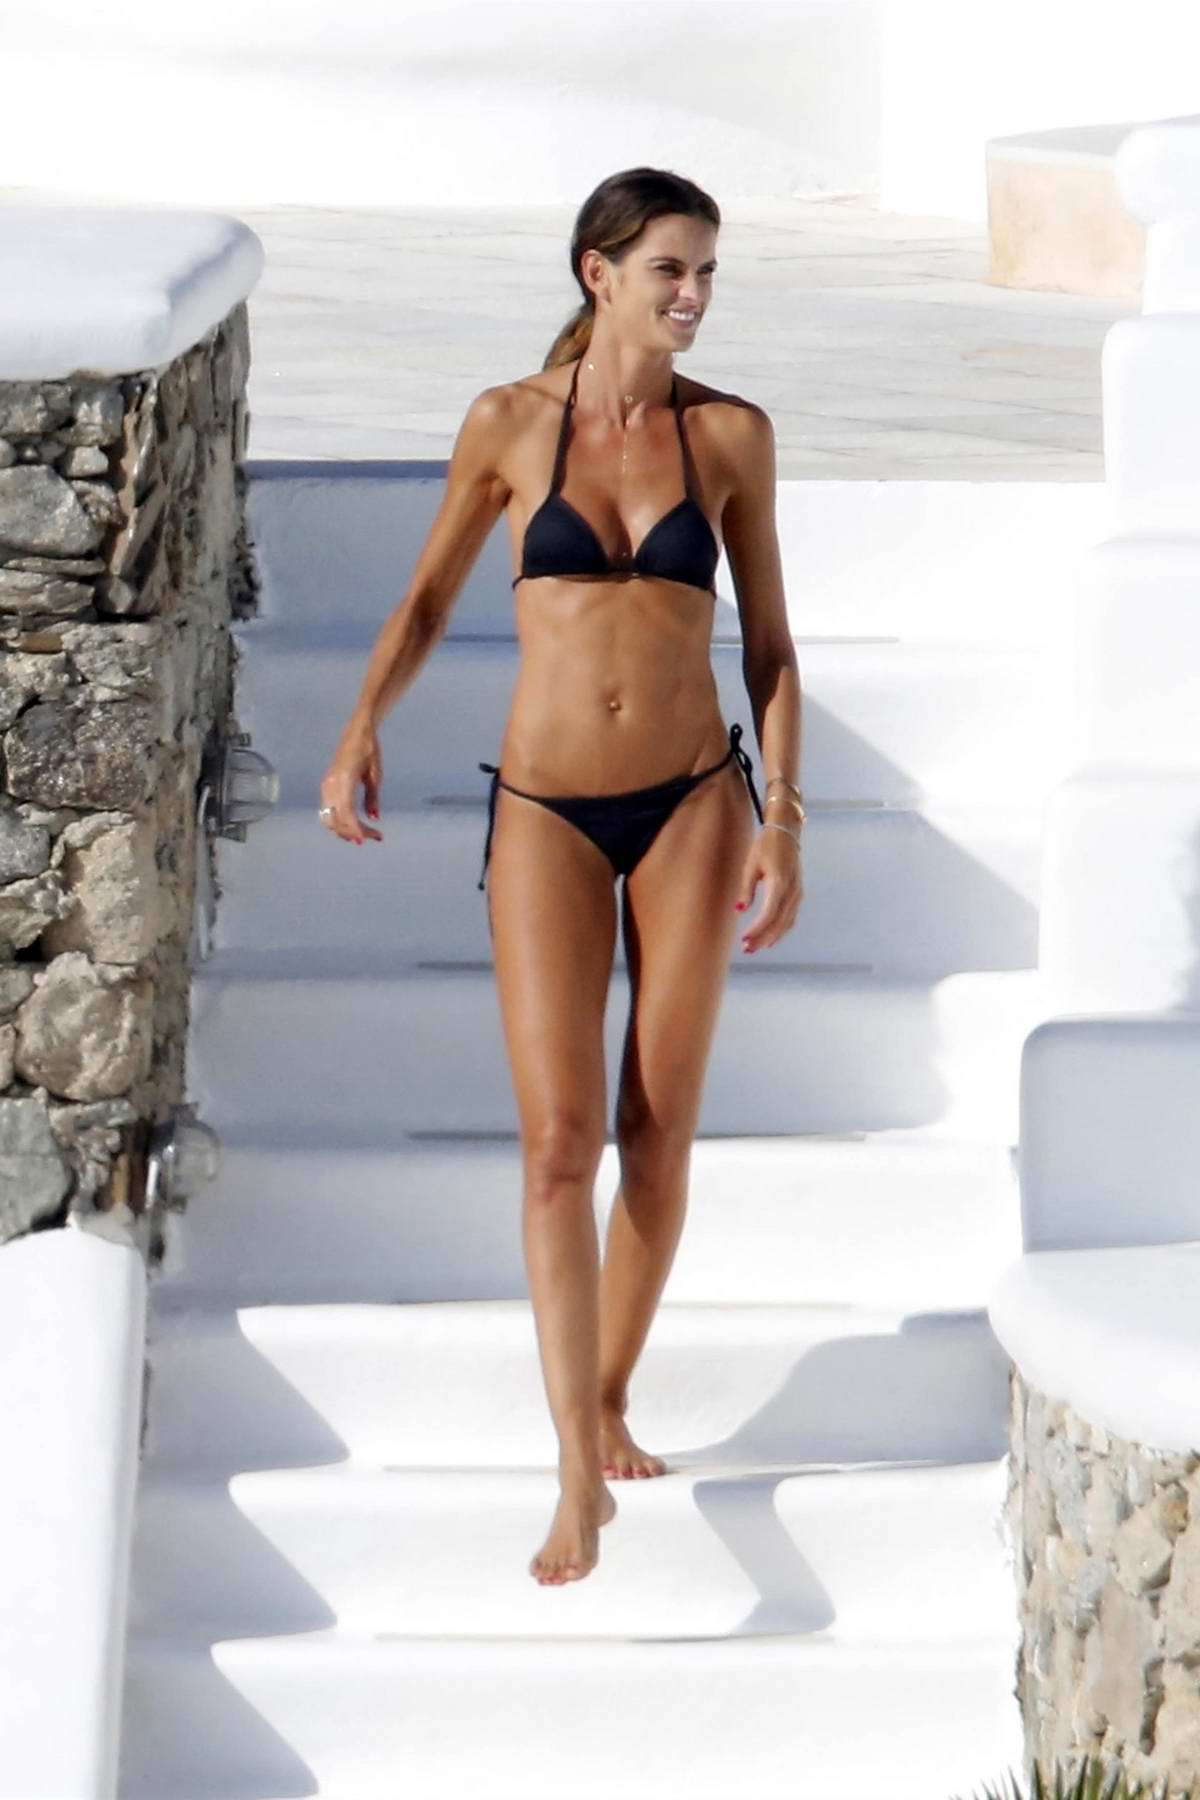 Izabel Goulart seen while relaxing by the pool in a bikini during her vacation in Mykonos, Greece